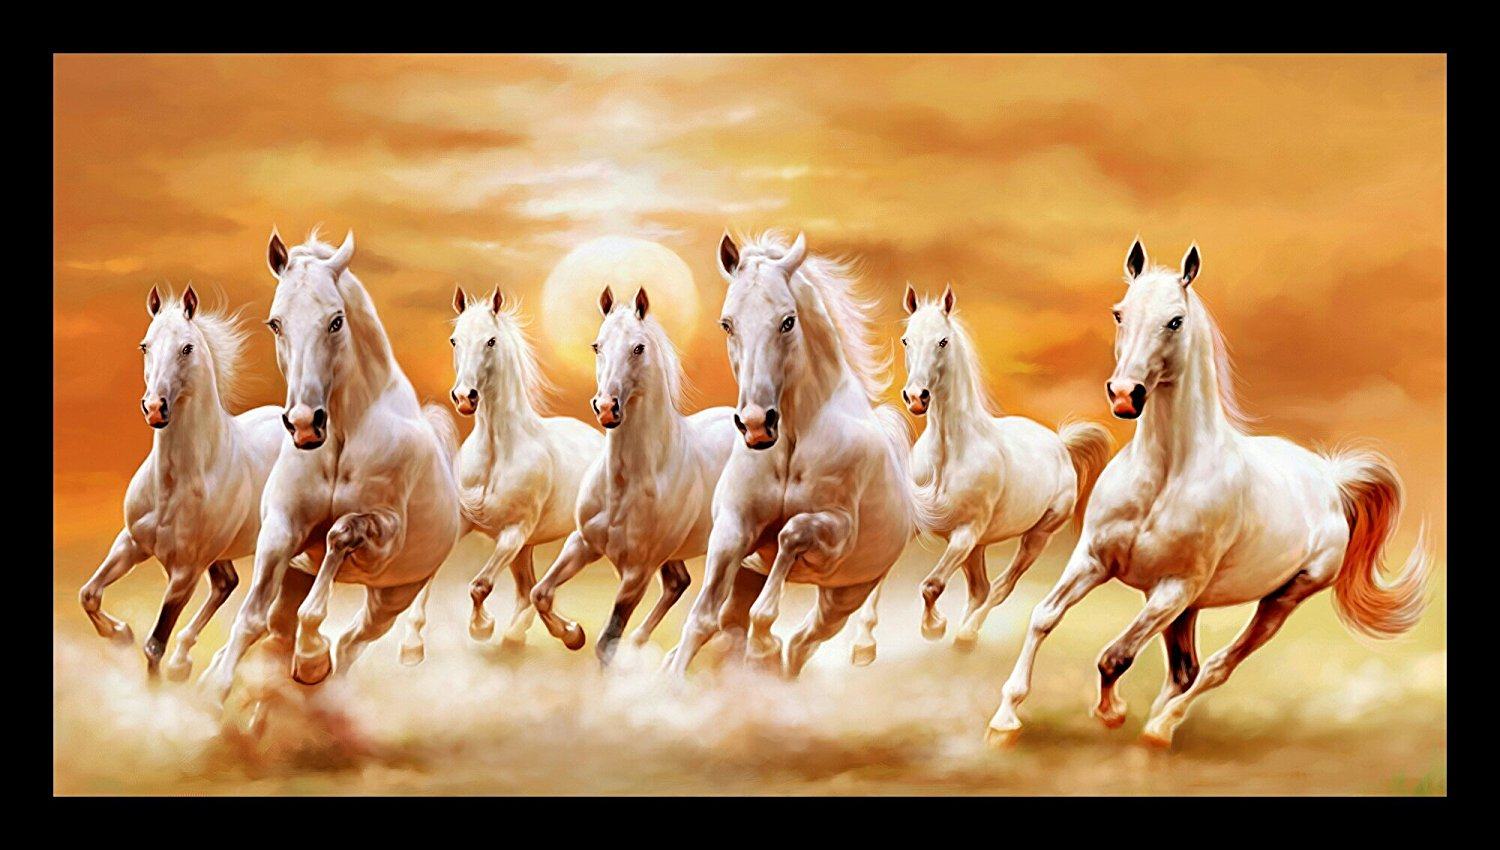 Seven Horses Hd Wallpaper White Seven Horses Painting 282144 Hd Wallpaper Backgrounds Download